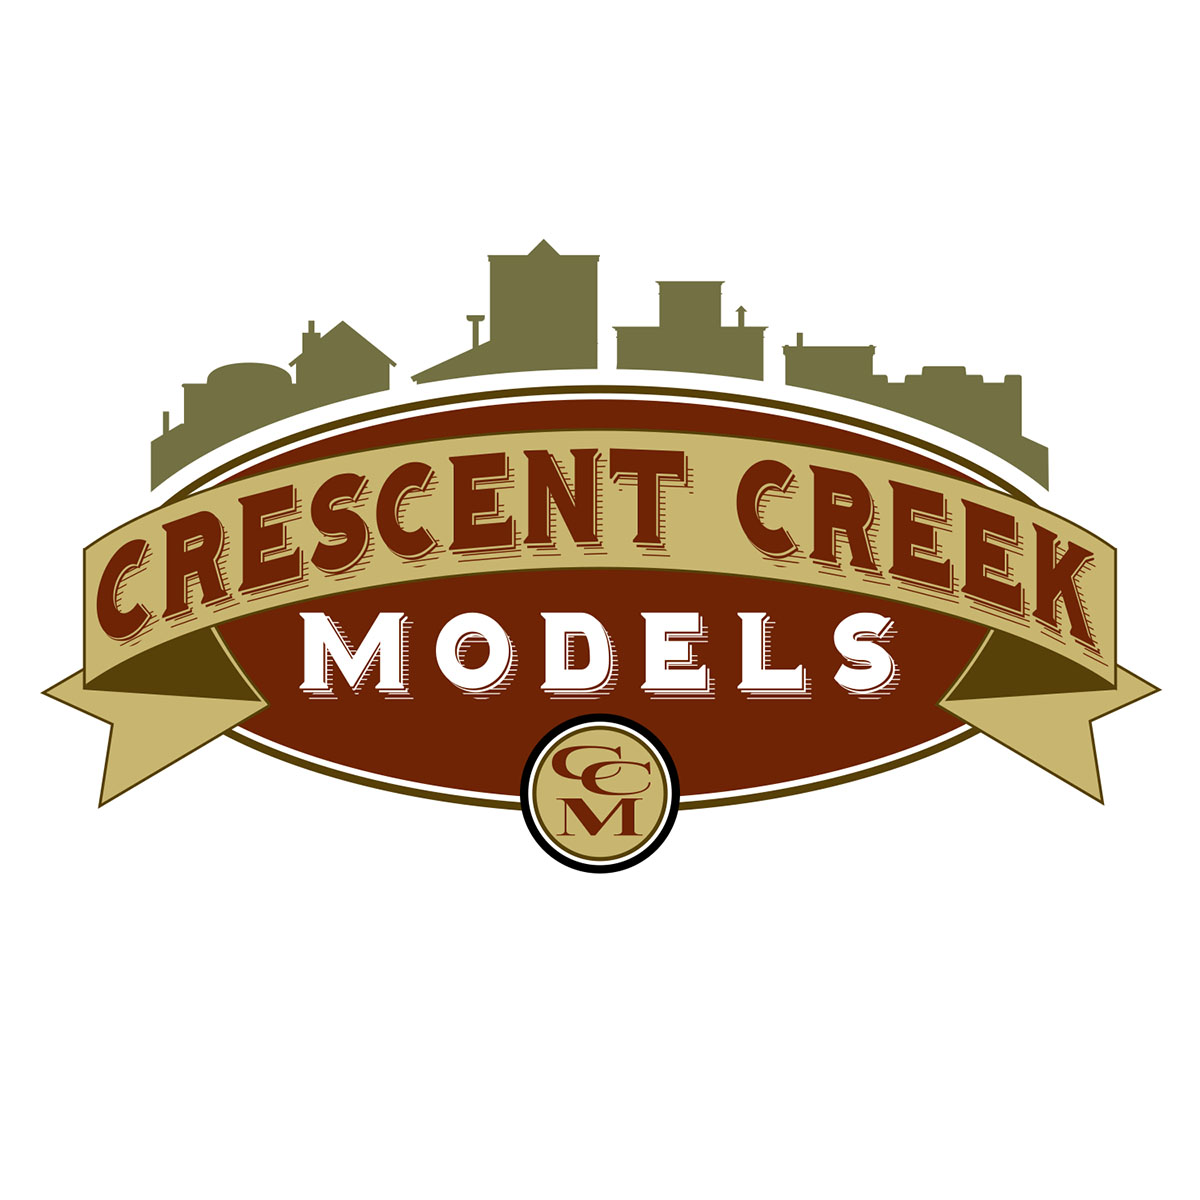 Crescent Creek Models Logo